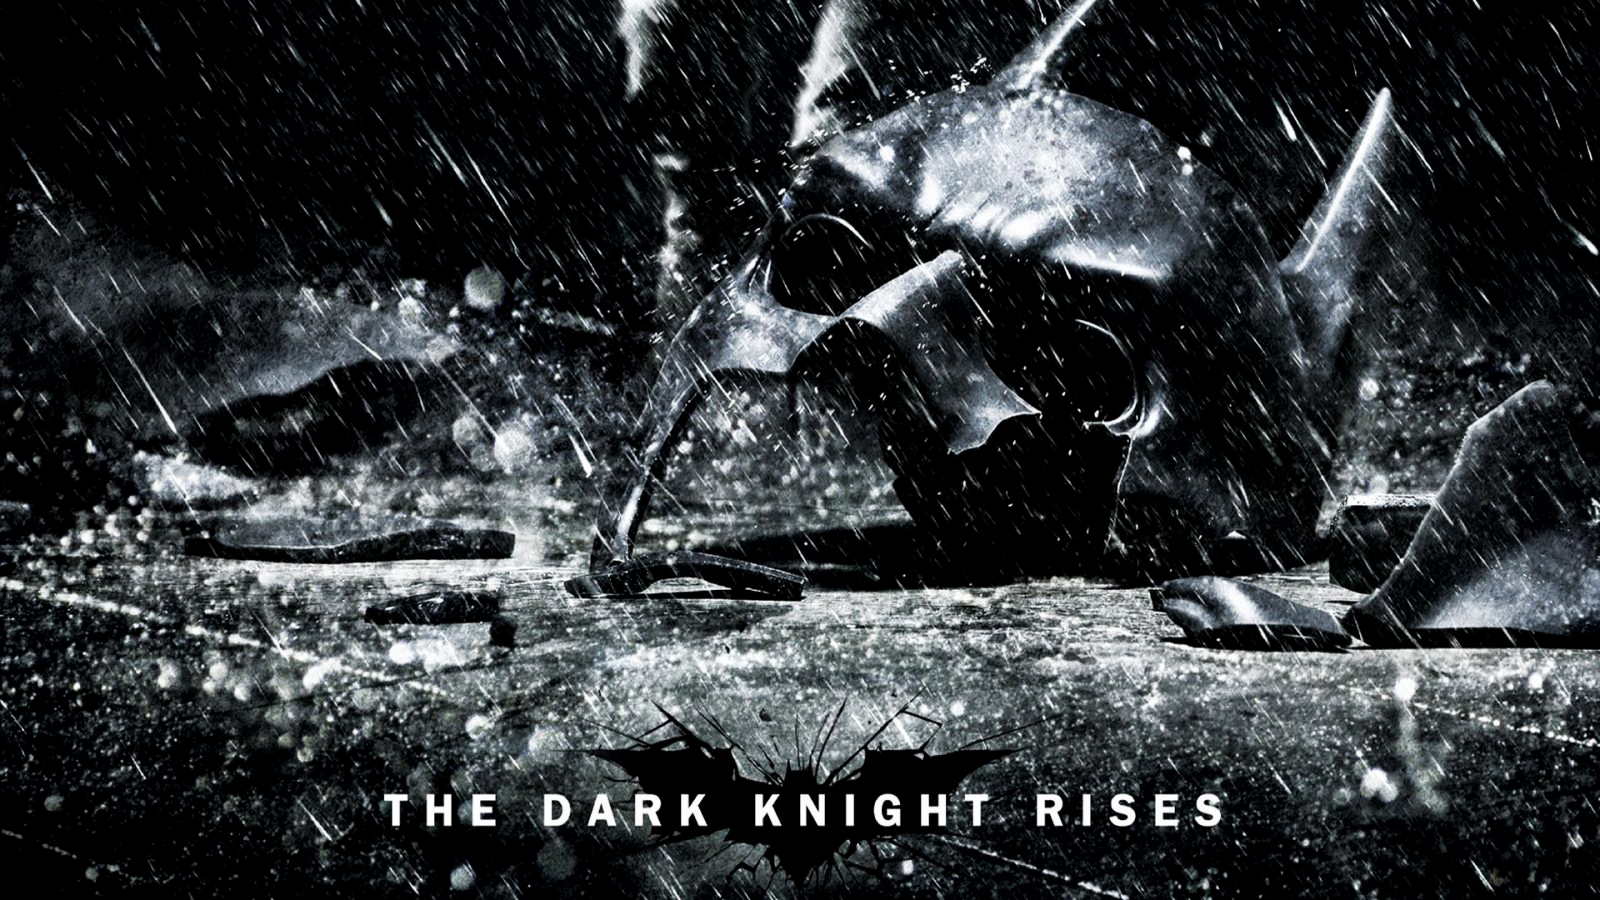 Dark Knight Rises 2012 HD Poster Wallpapers Download Wallpapers 1600x900